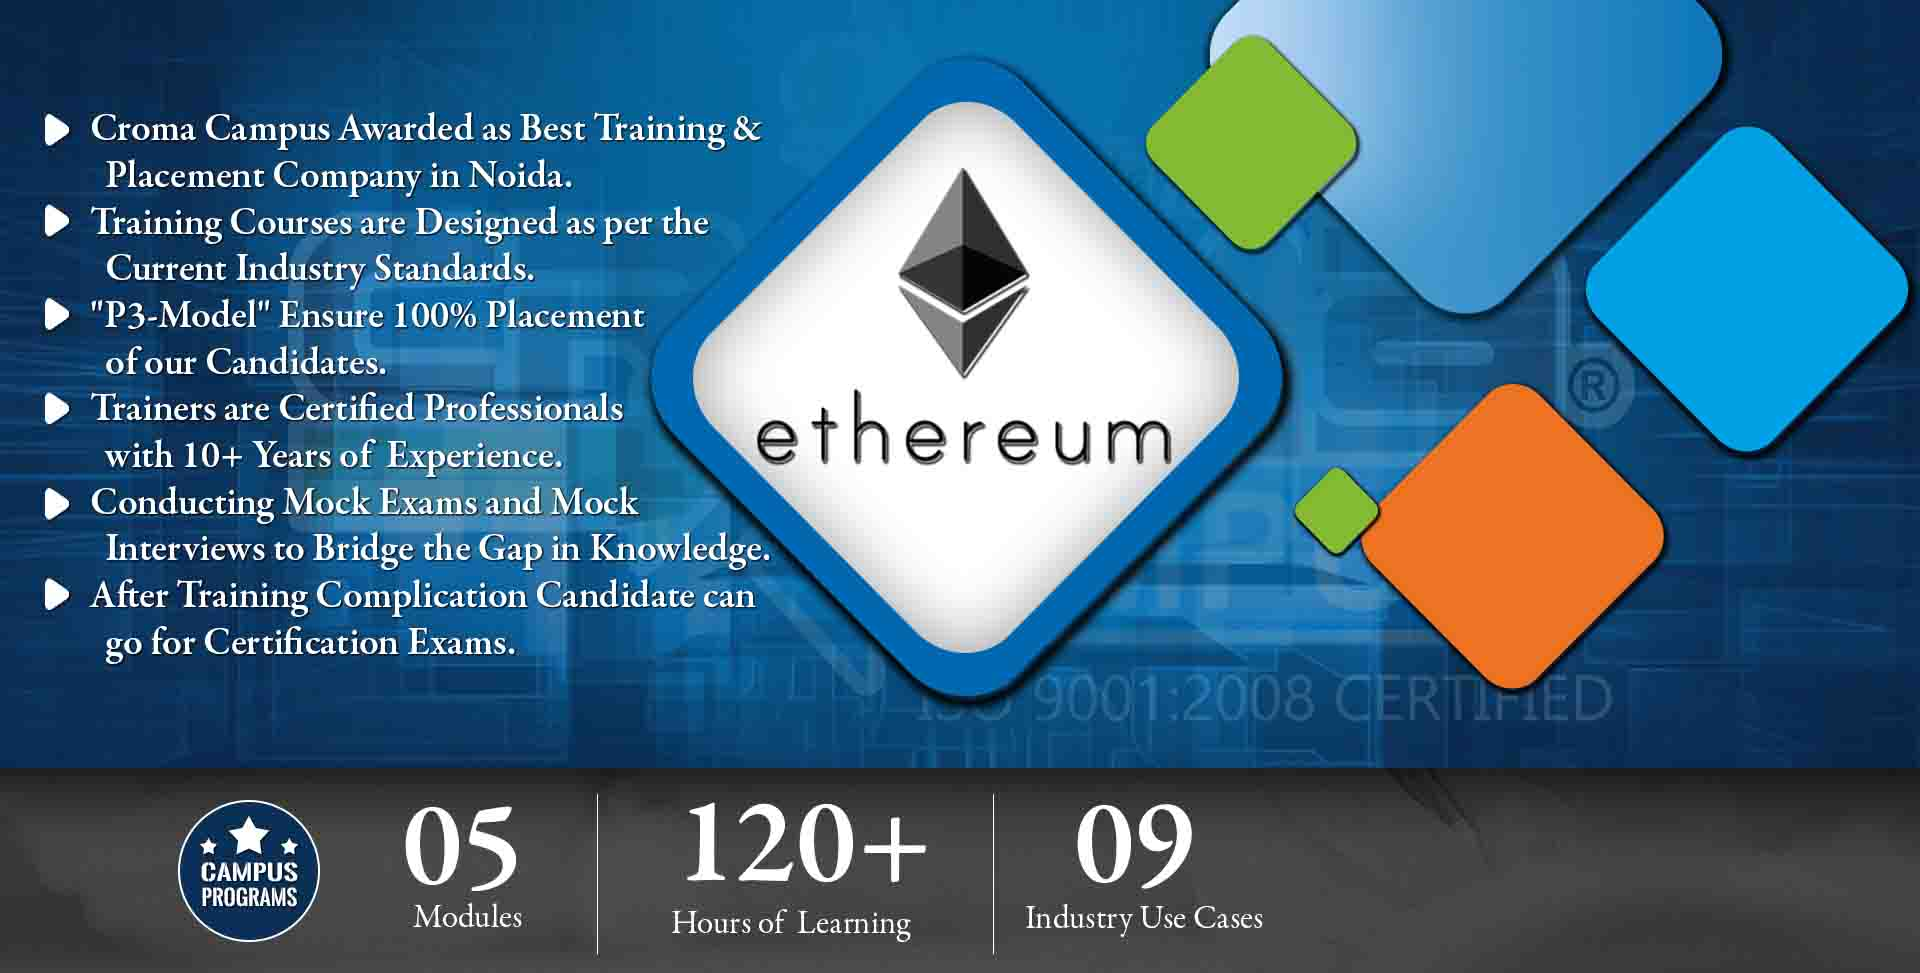 ETHEREUMTraining in Noida- Croma Campus